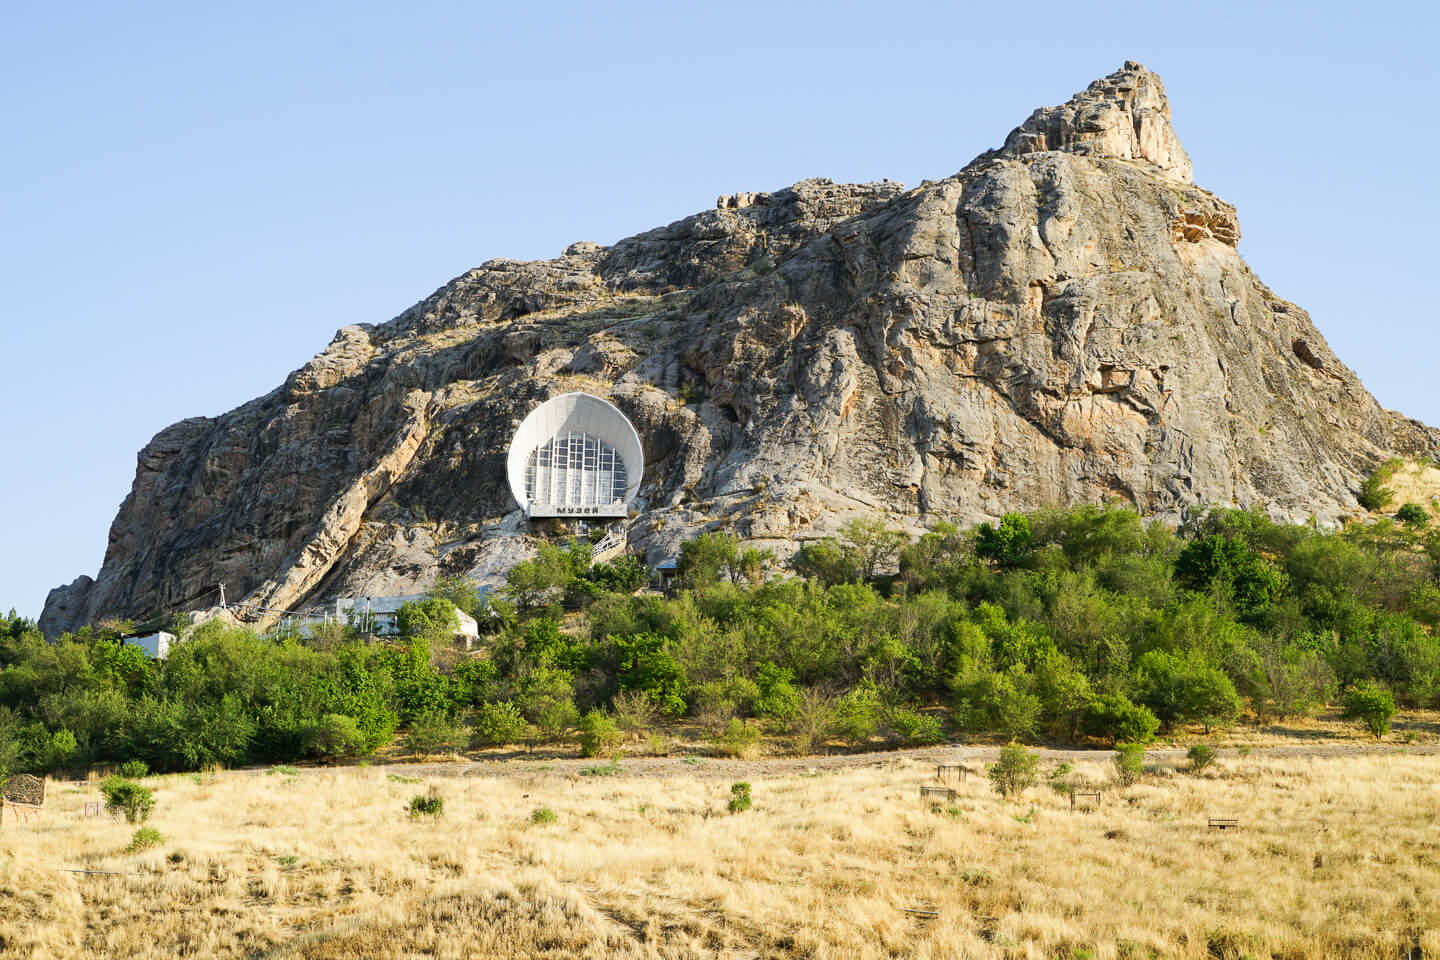 Suleiman Mountain with cave in Osh